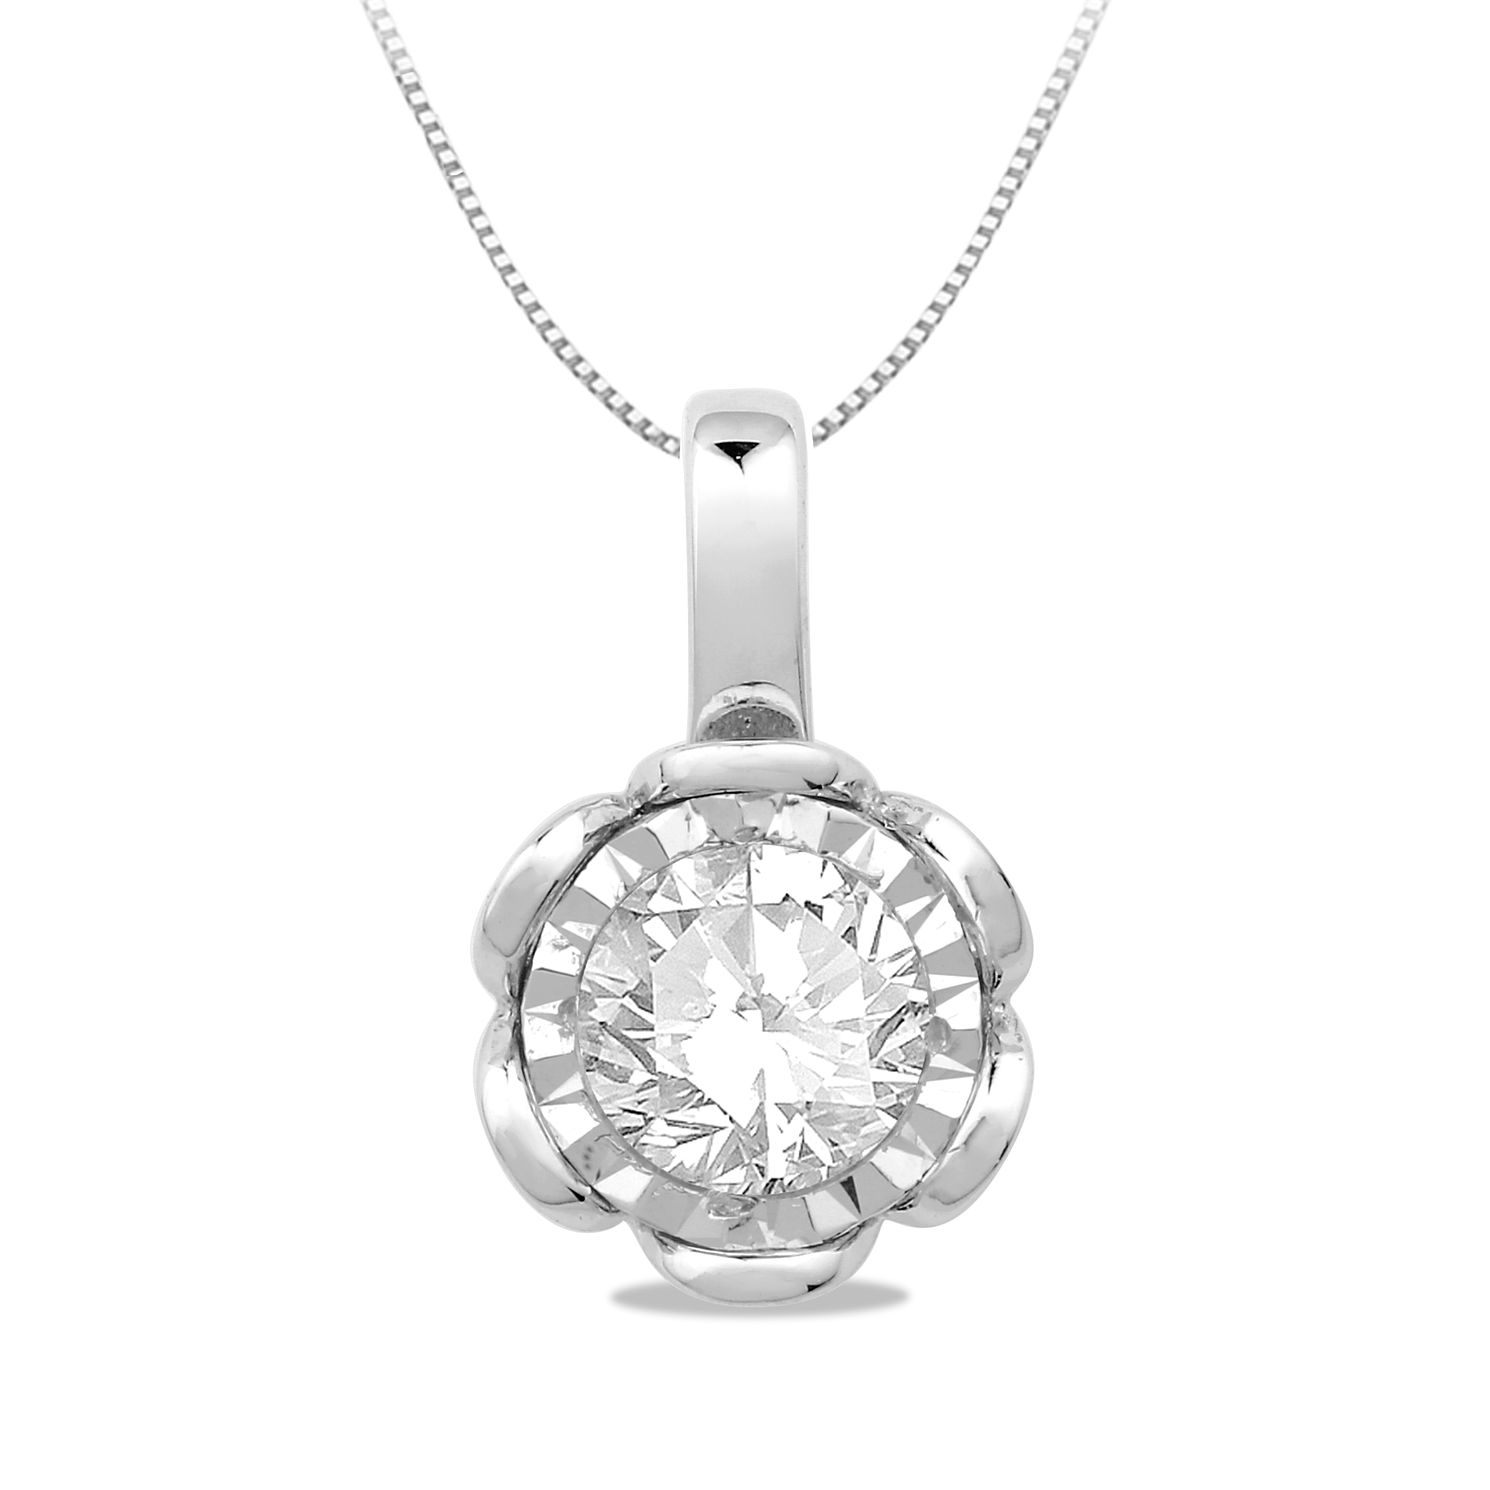 9ct White Gold & 1/5ct Diamond Illusion Pendant - Product number 5033543